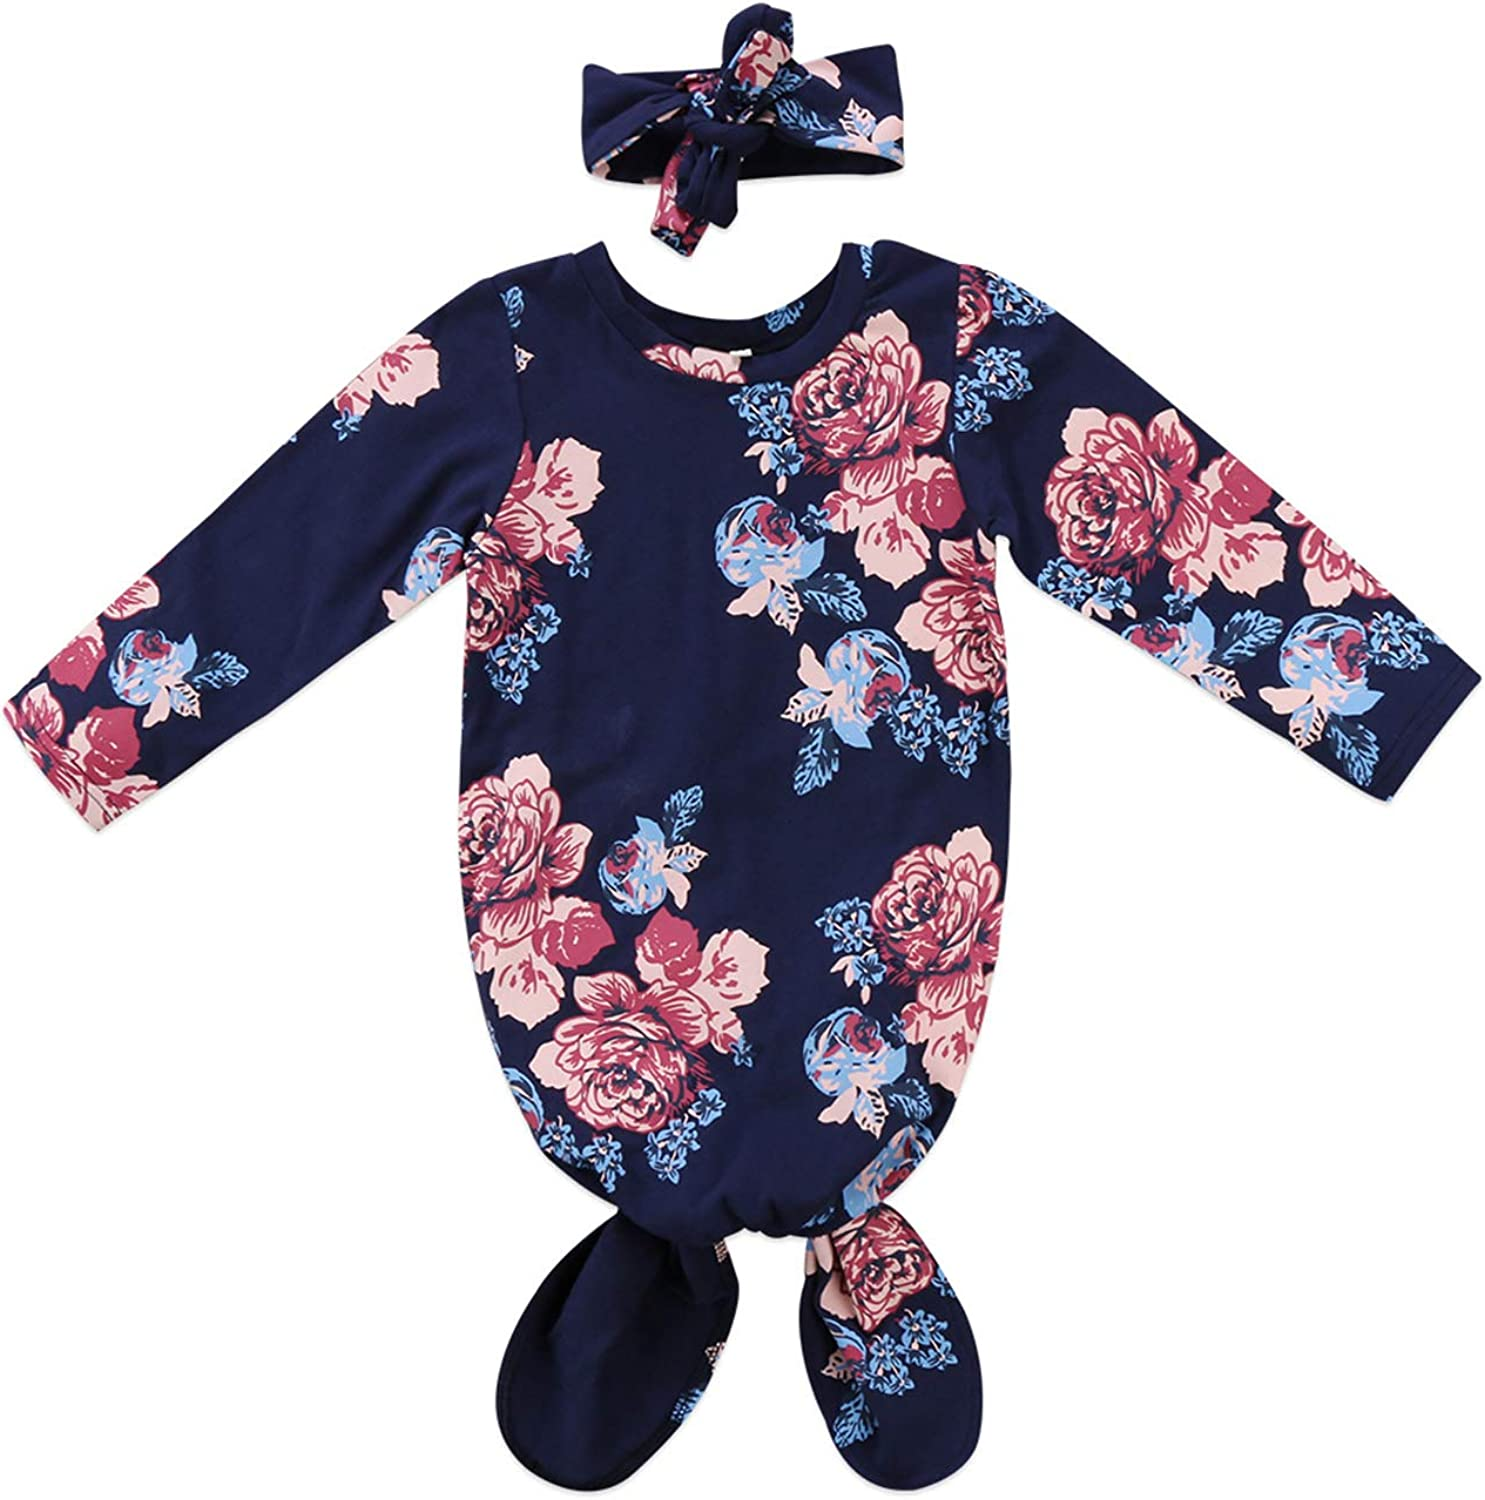 Baby Flower Sleeping Bags Newborn Infant Blanket Swaddle Wrap Gown with Hat Outfits 2Pcs